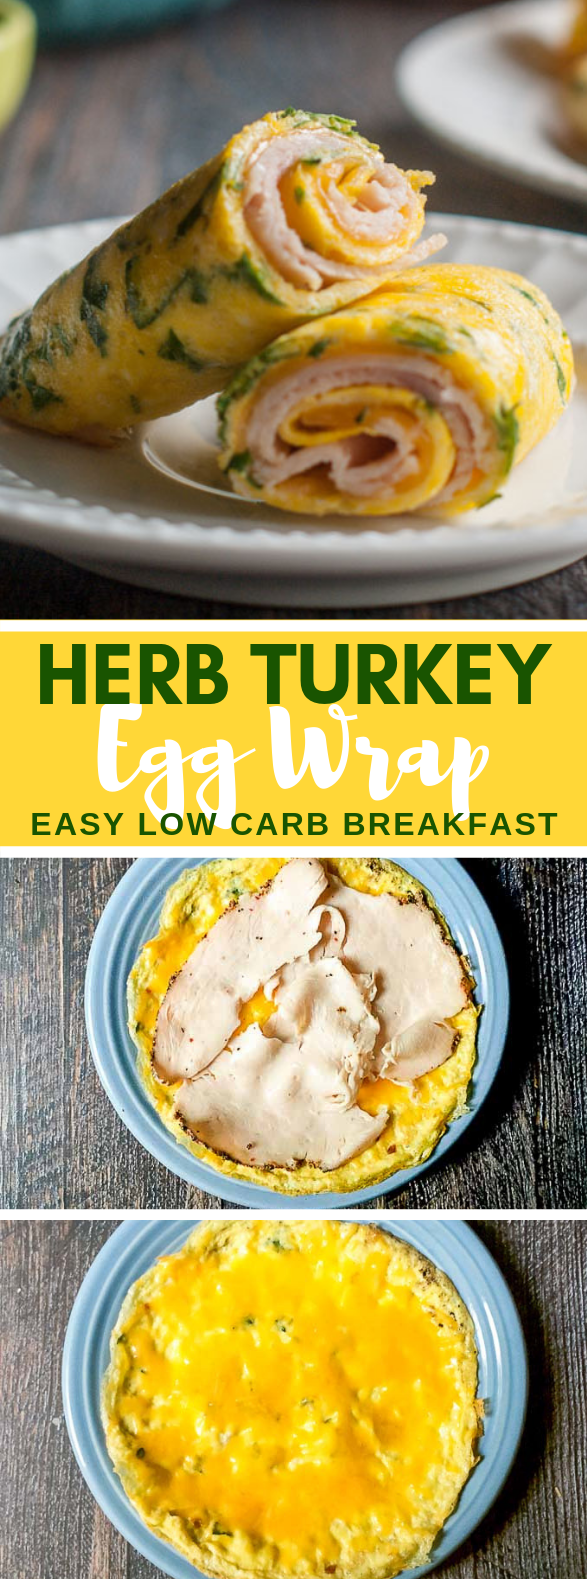 HERB TURKEY EGG WRAP – A GLUTEN FREE, LOW CARB TORTILLA SUBSTITUTE #paleo #diet